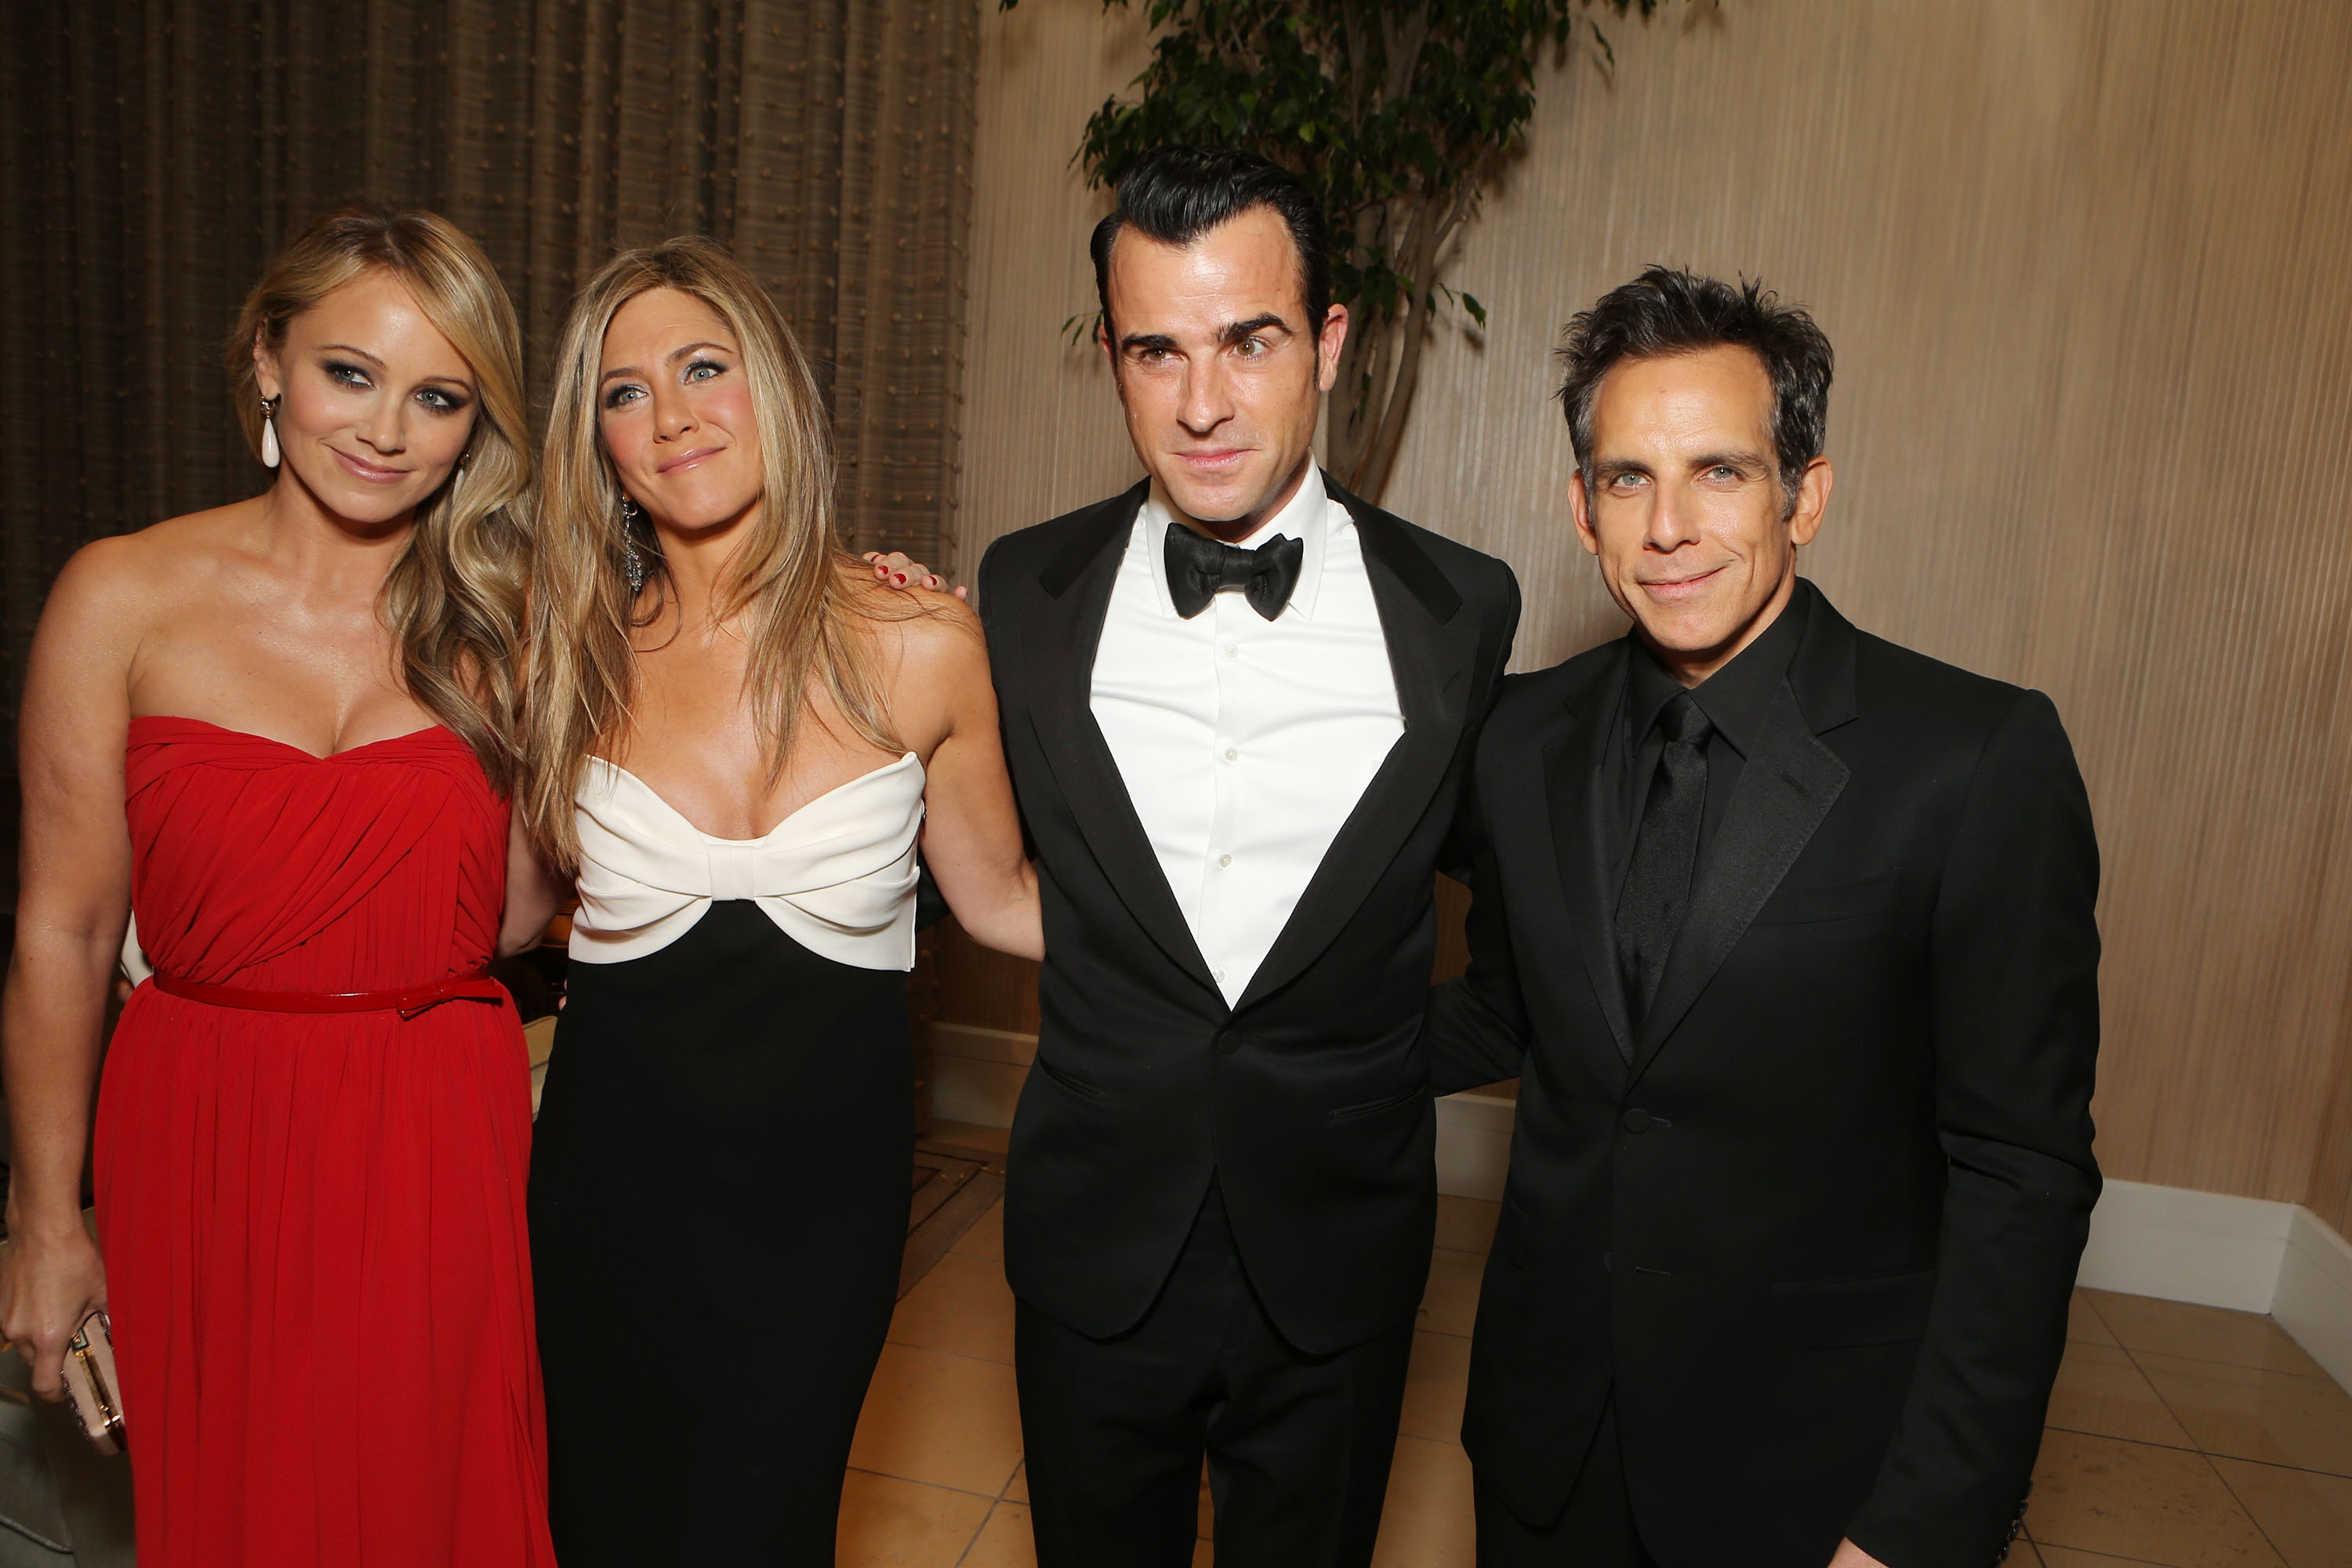 Jennifer Aniston and Justin Theroux bet365 telefon-nr arrived in Mexico bet365 punkte umwandeln bet365 keine punktzahl bohrung to vacation ...